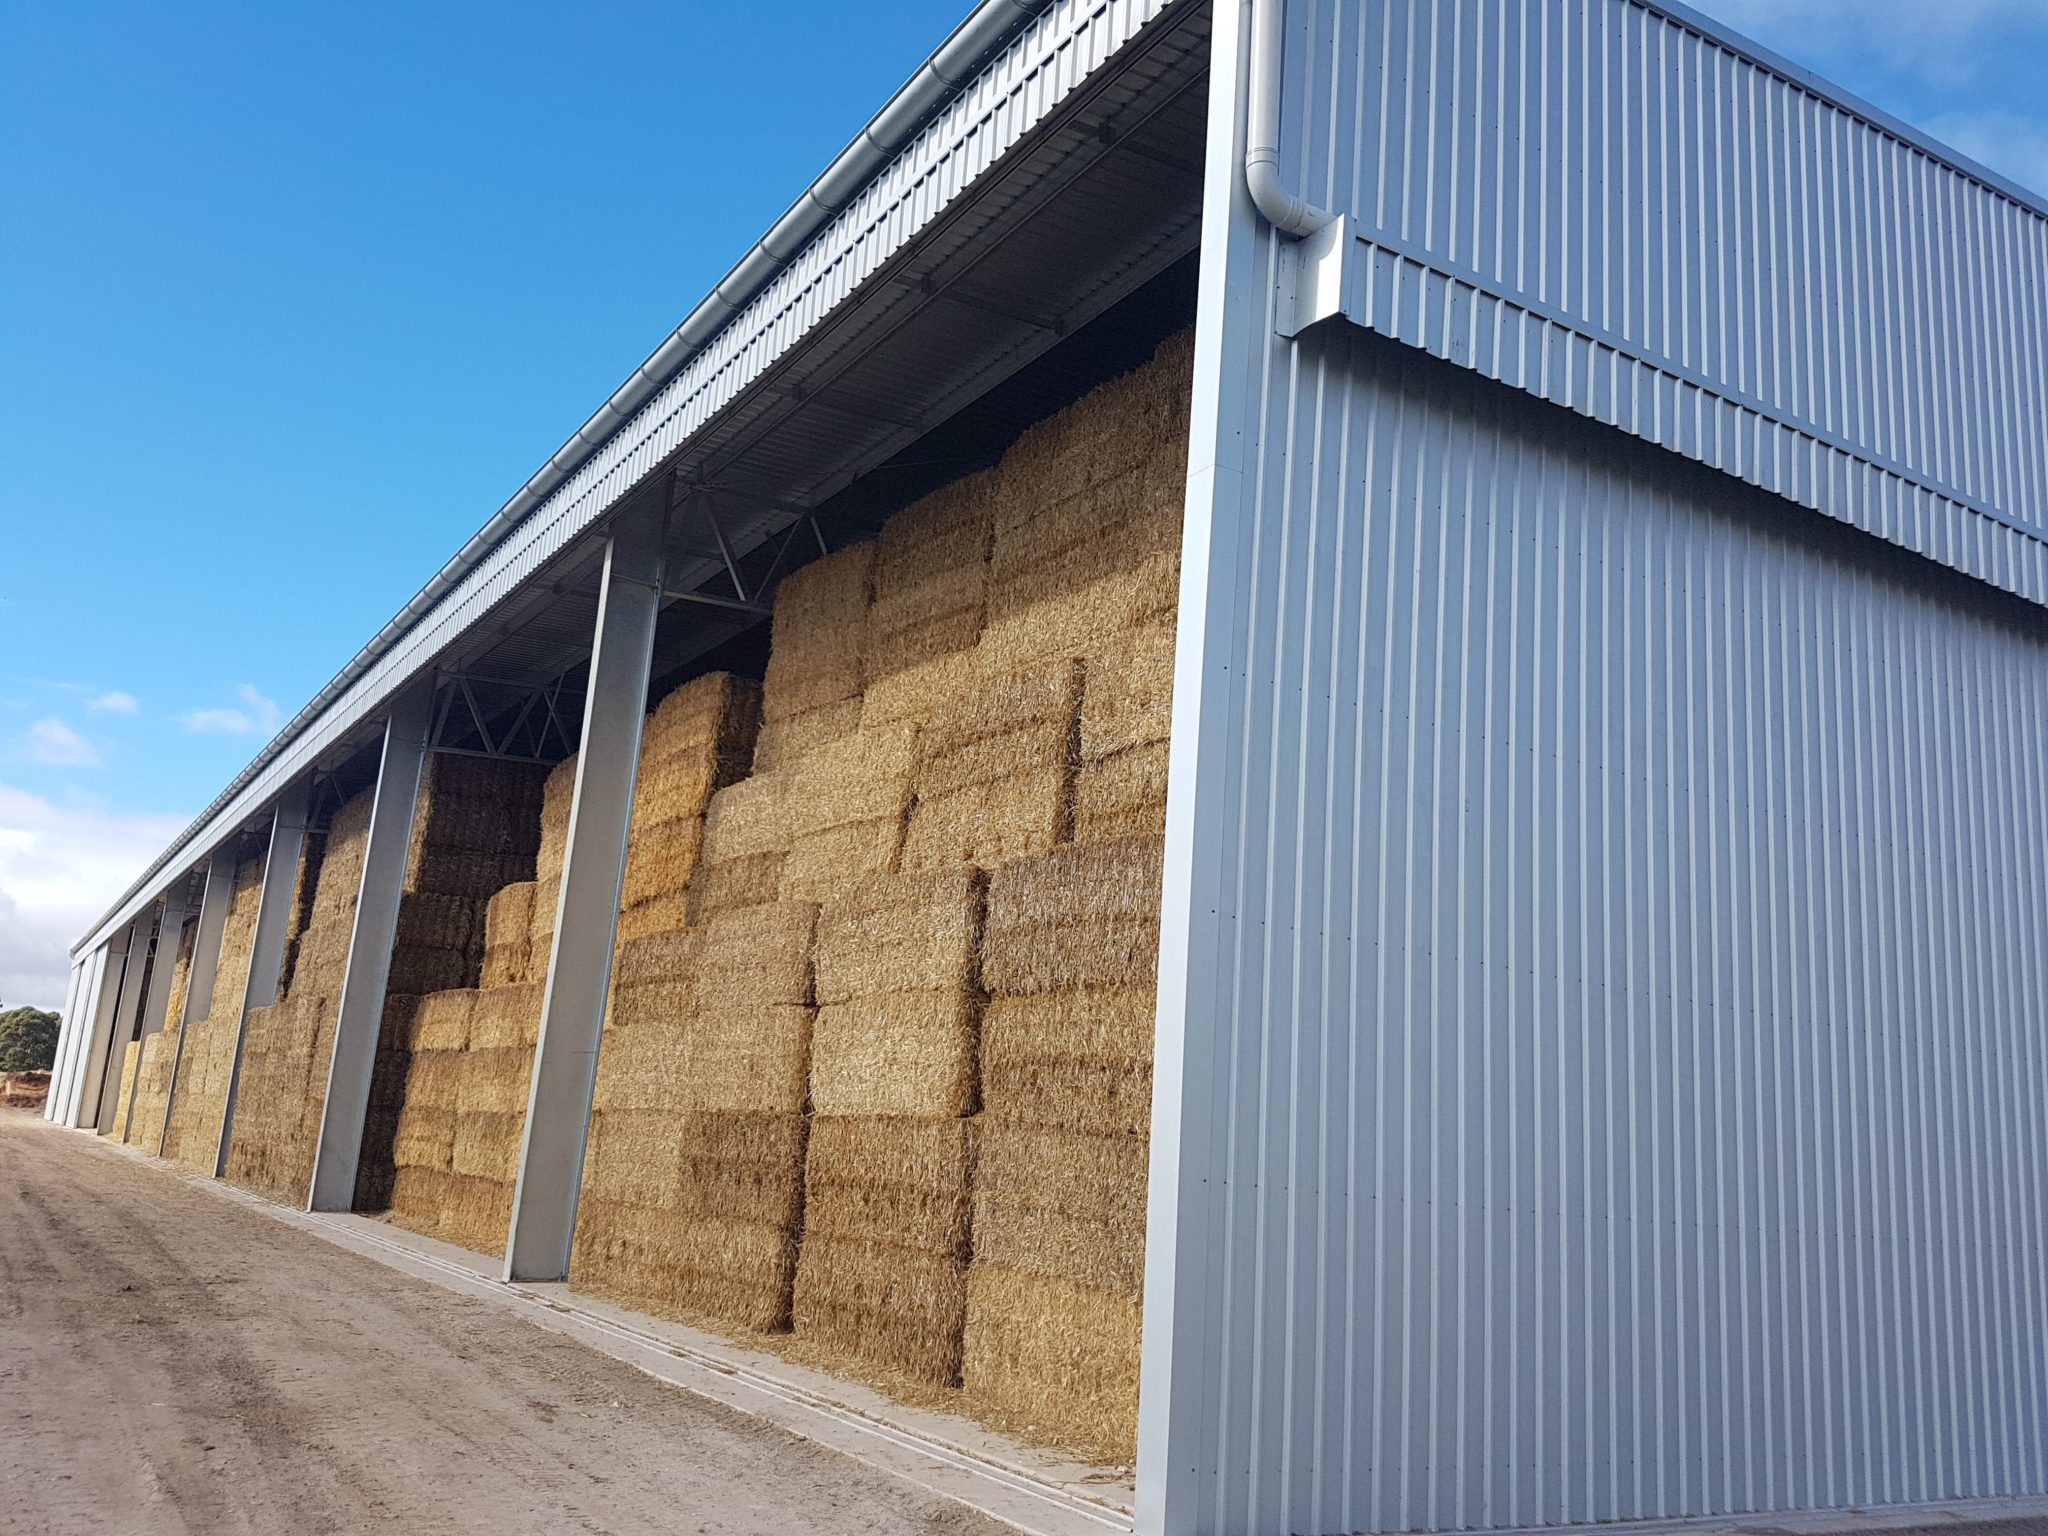 Home Page Hay Shed Box min 1 - Hay Shed